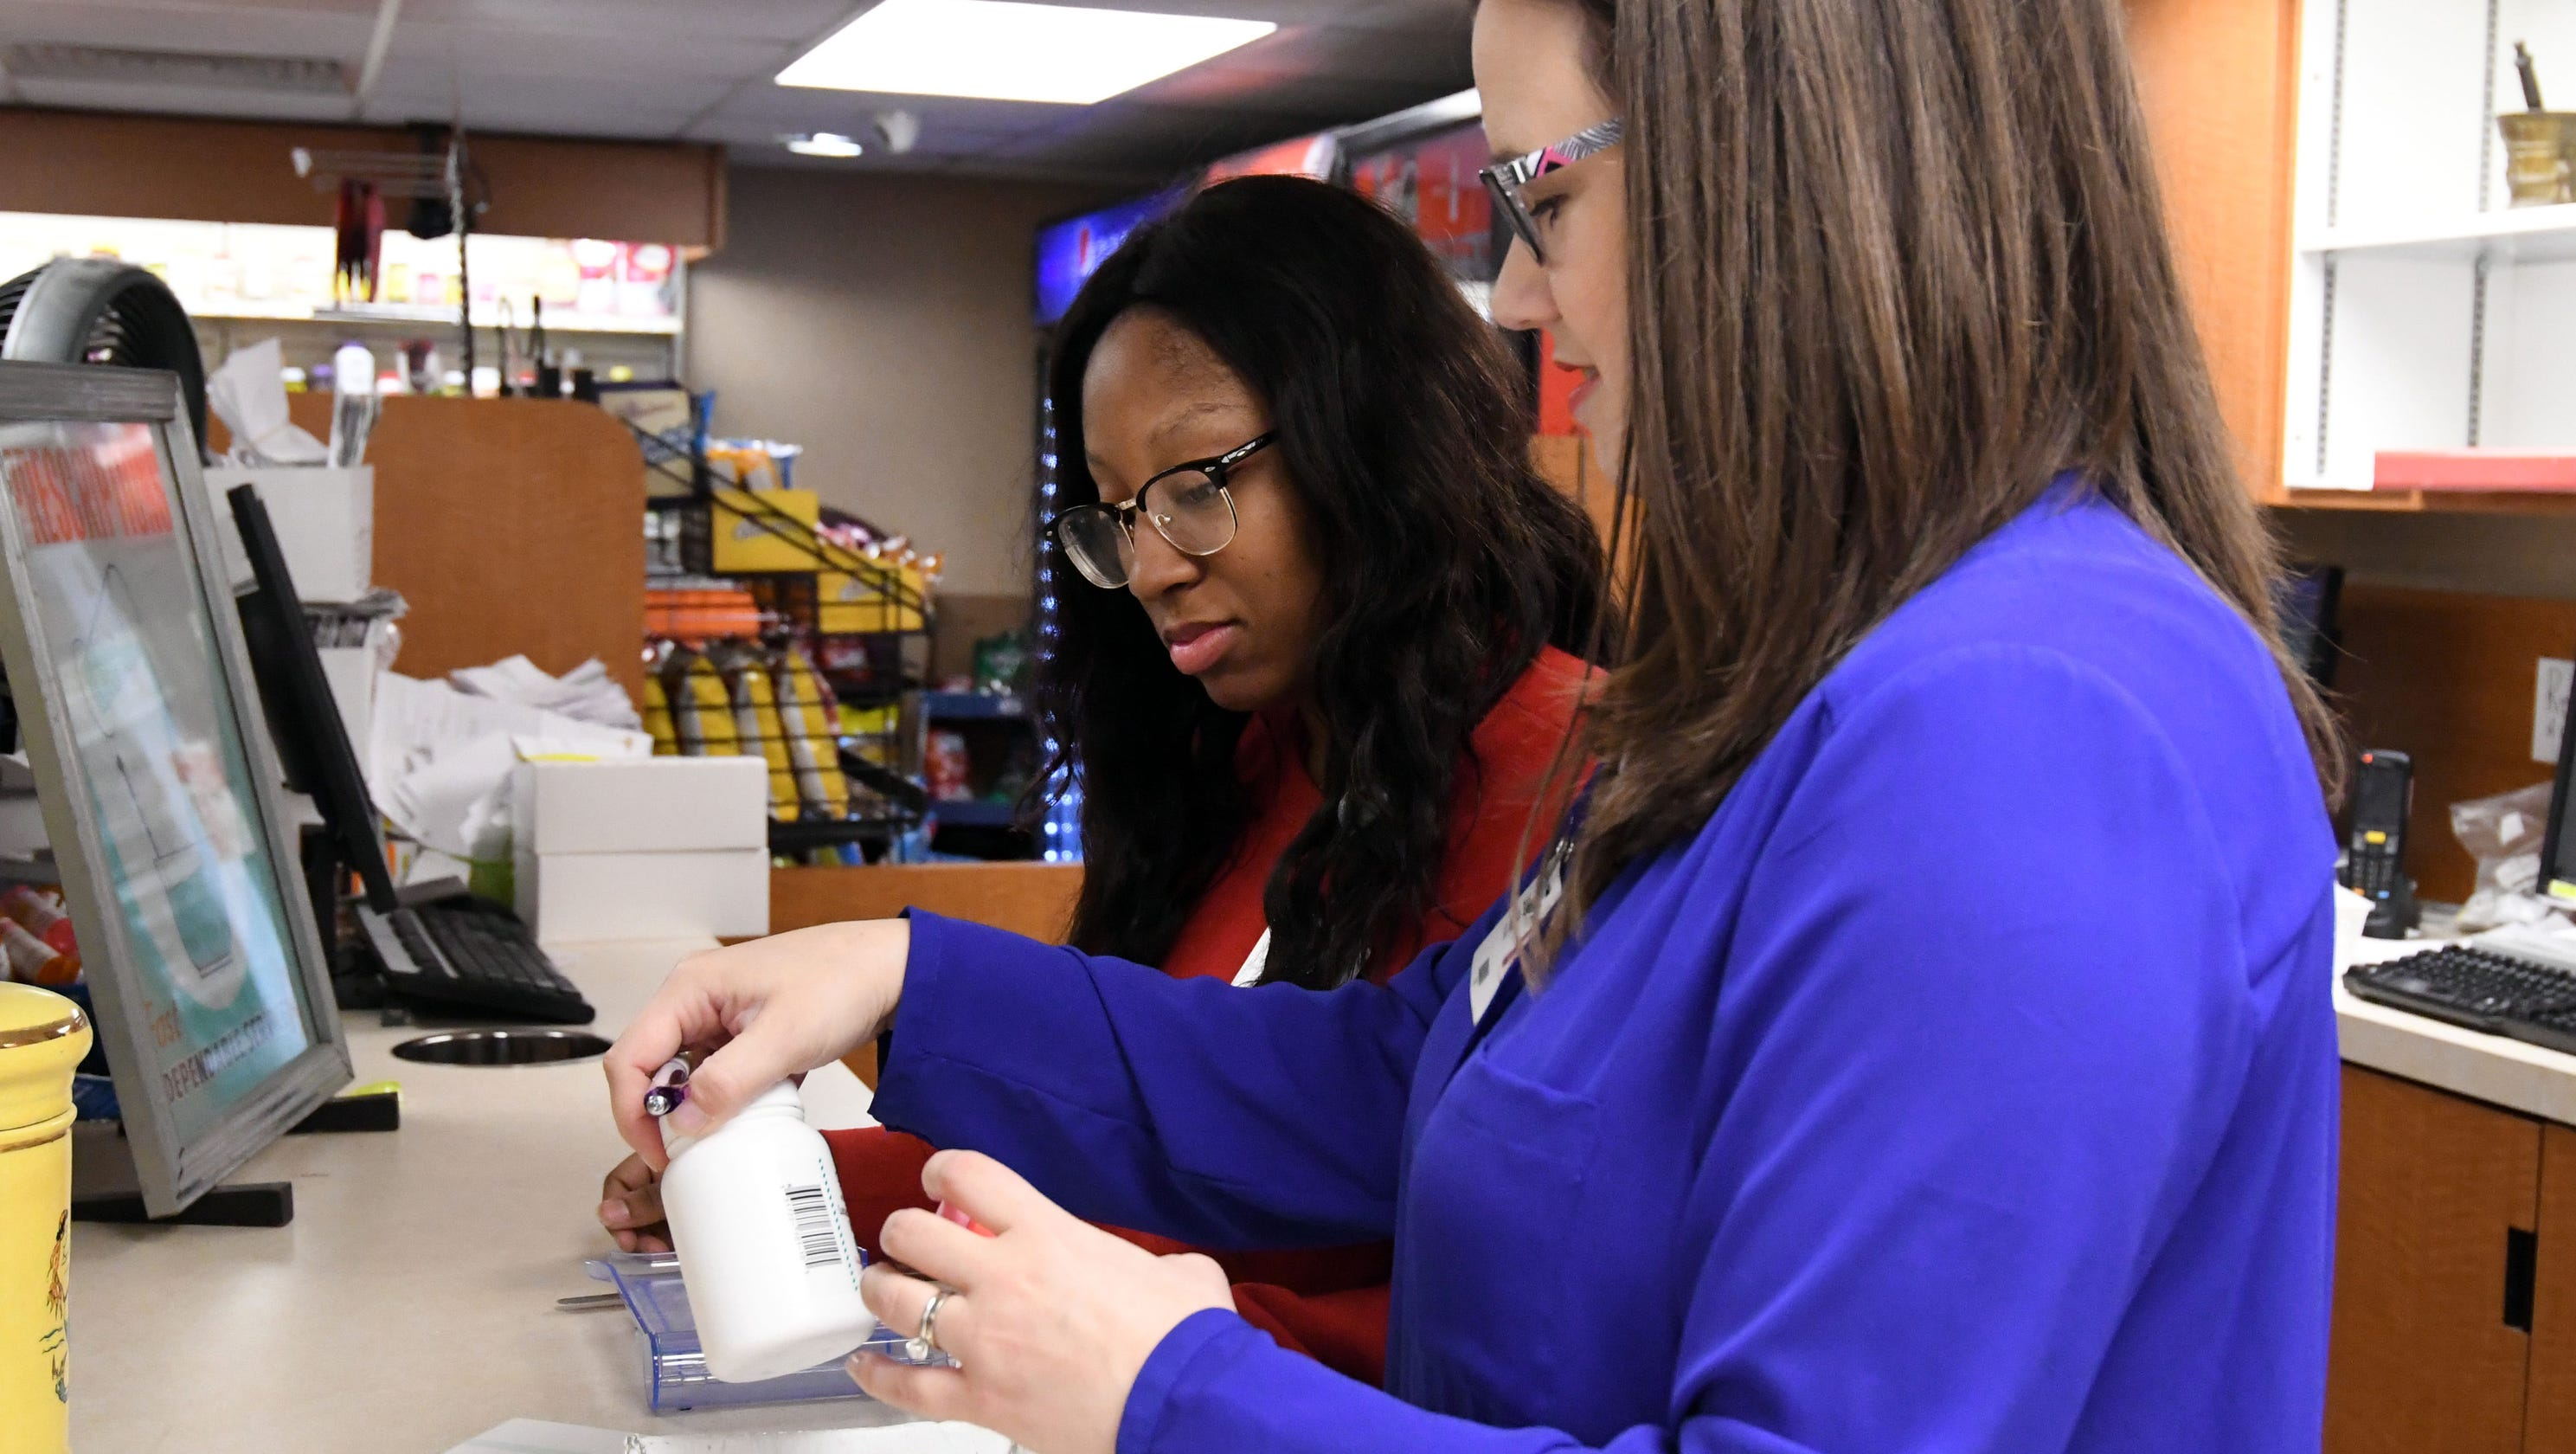 Medication non-adherence: 75 percent non-compliant on